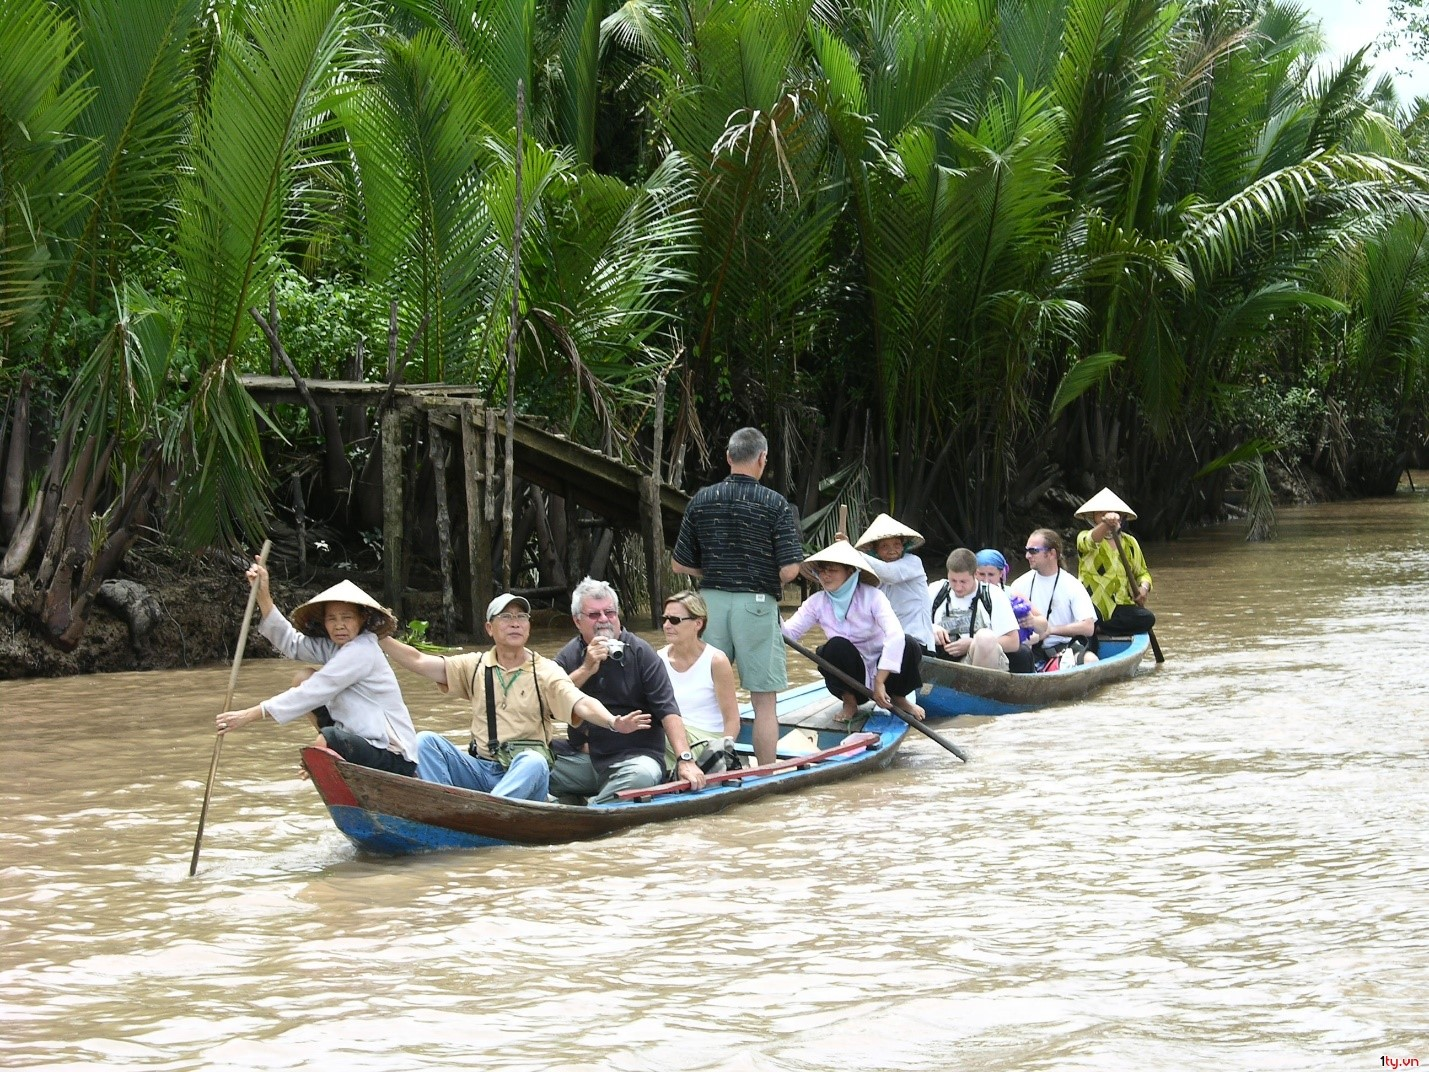 touring-on-a-boat-should-always-be-included-in-a-mekong-adventure-tour-saigon-riders